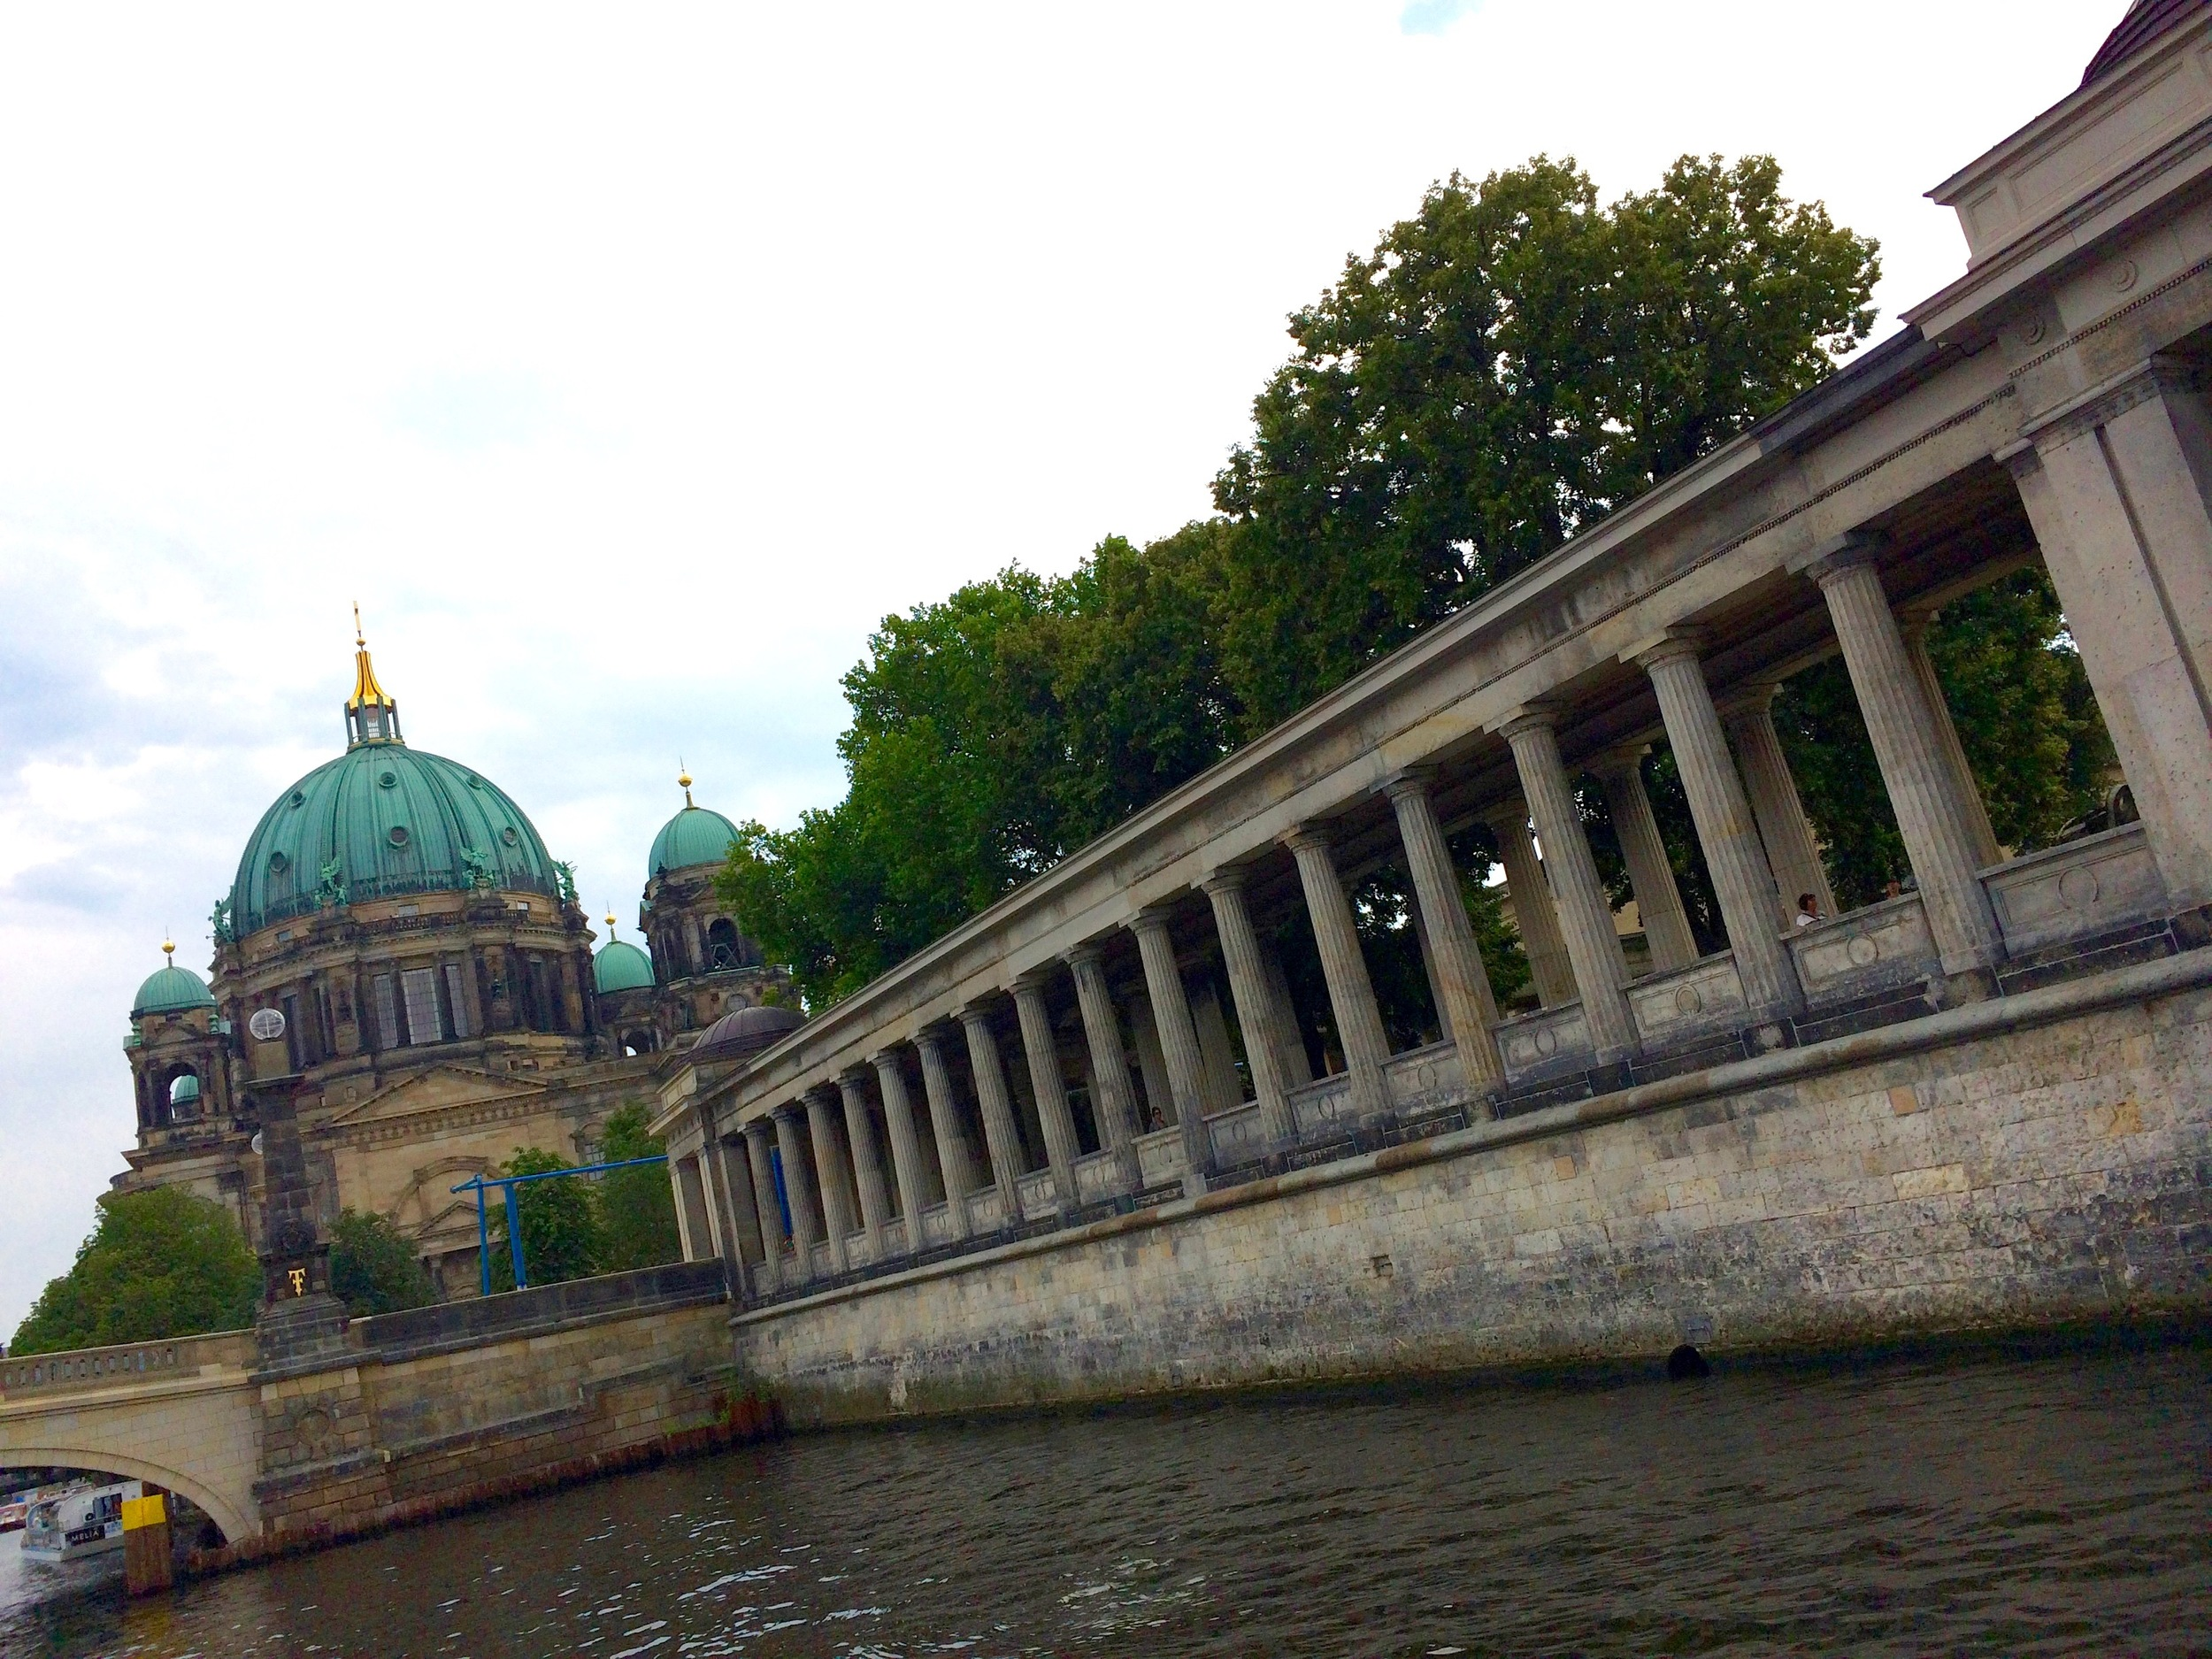 Museum Insel from the Spree Image © Melinda Barlow